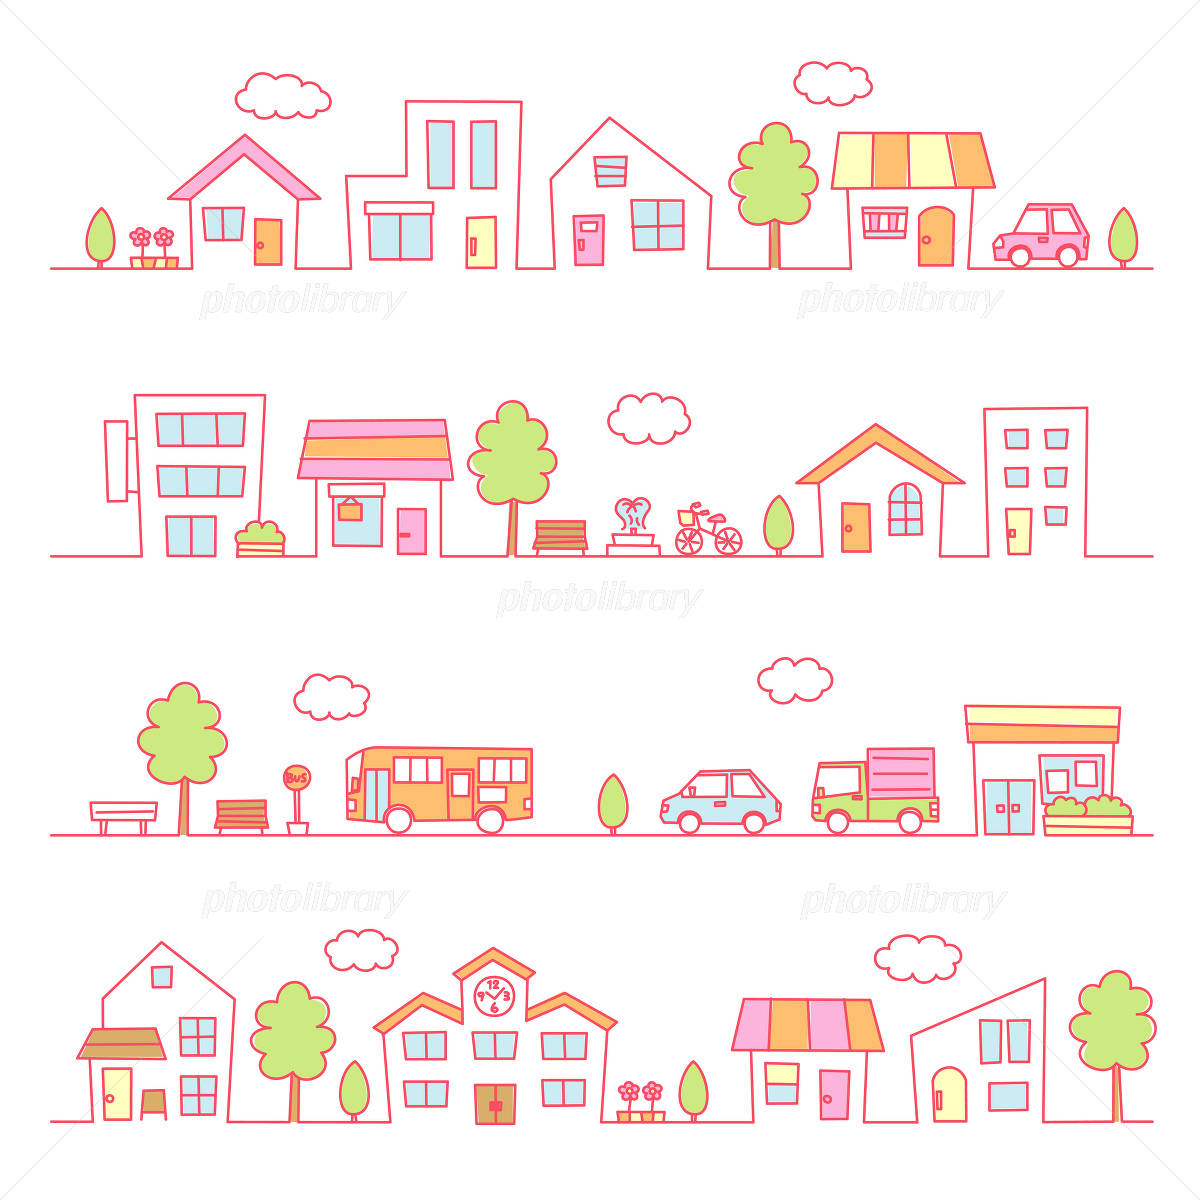 Town pink illustrations イラスト素材